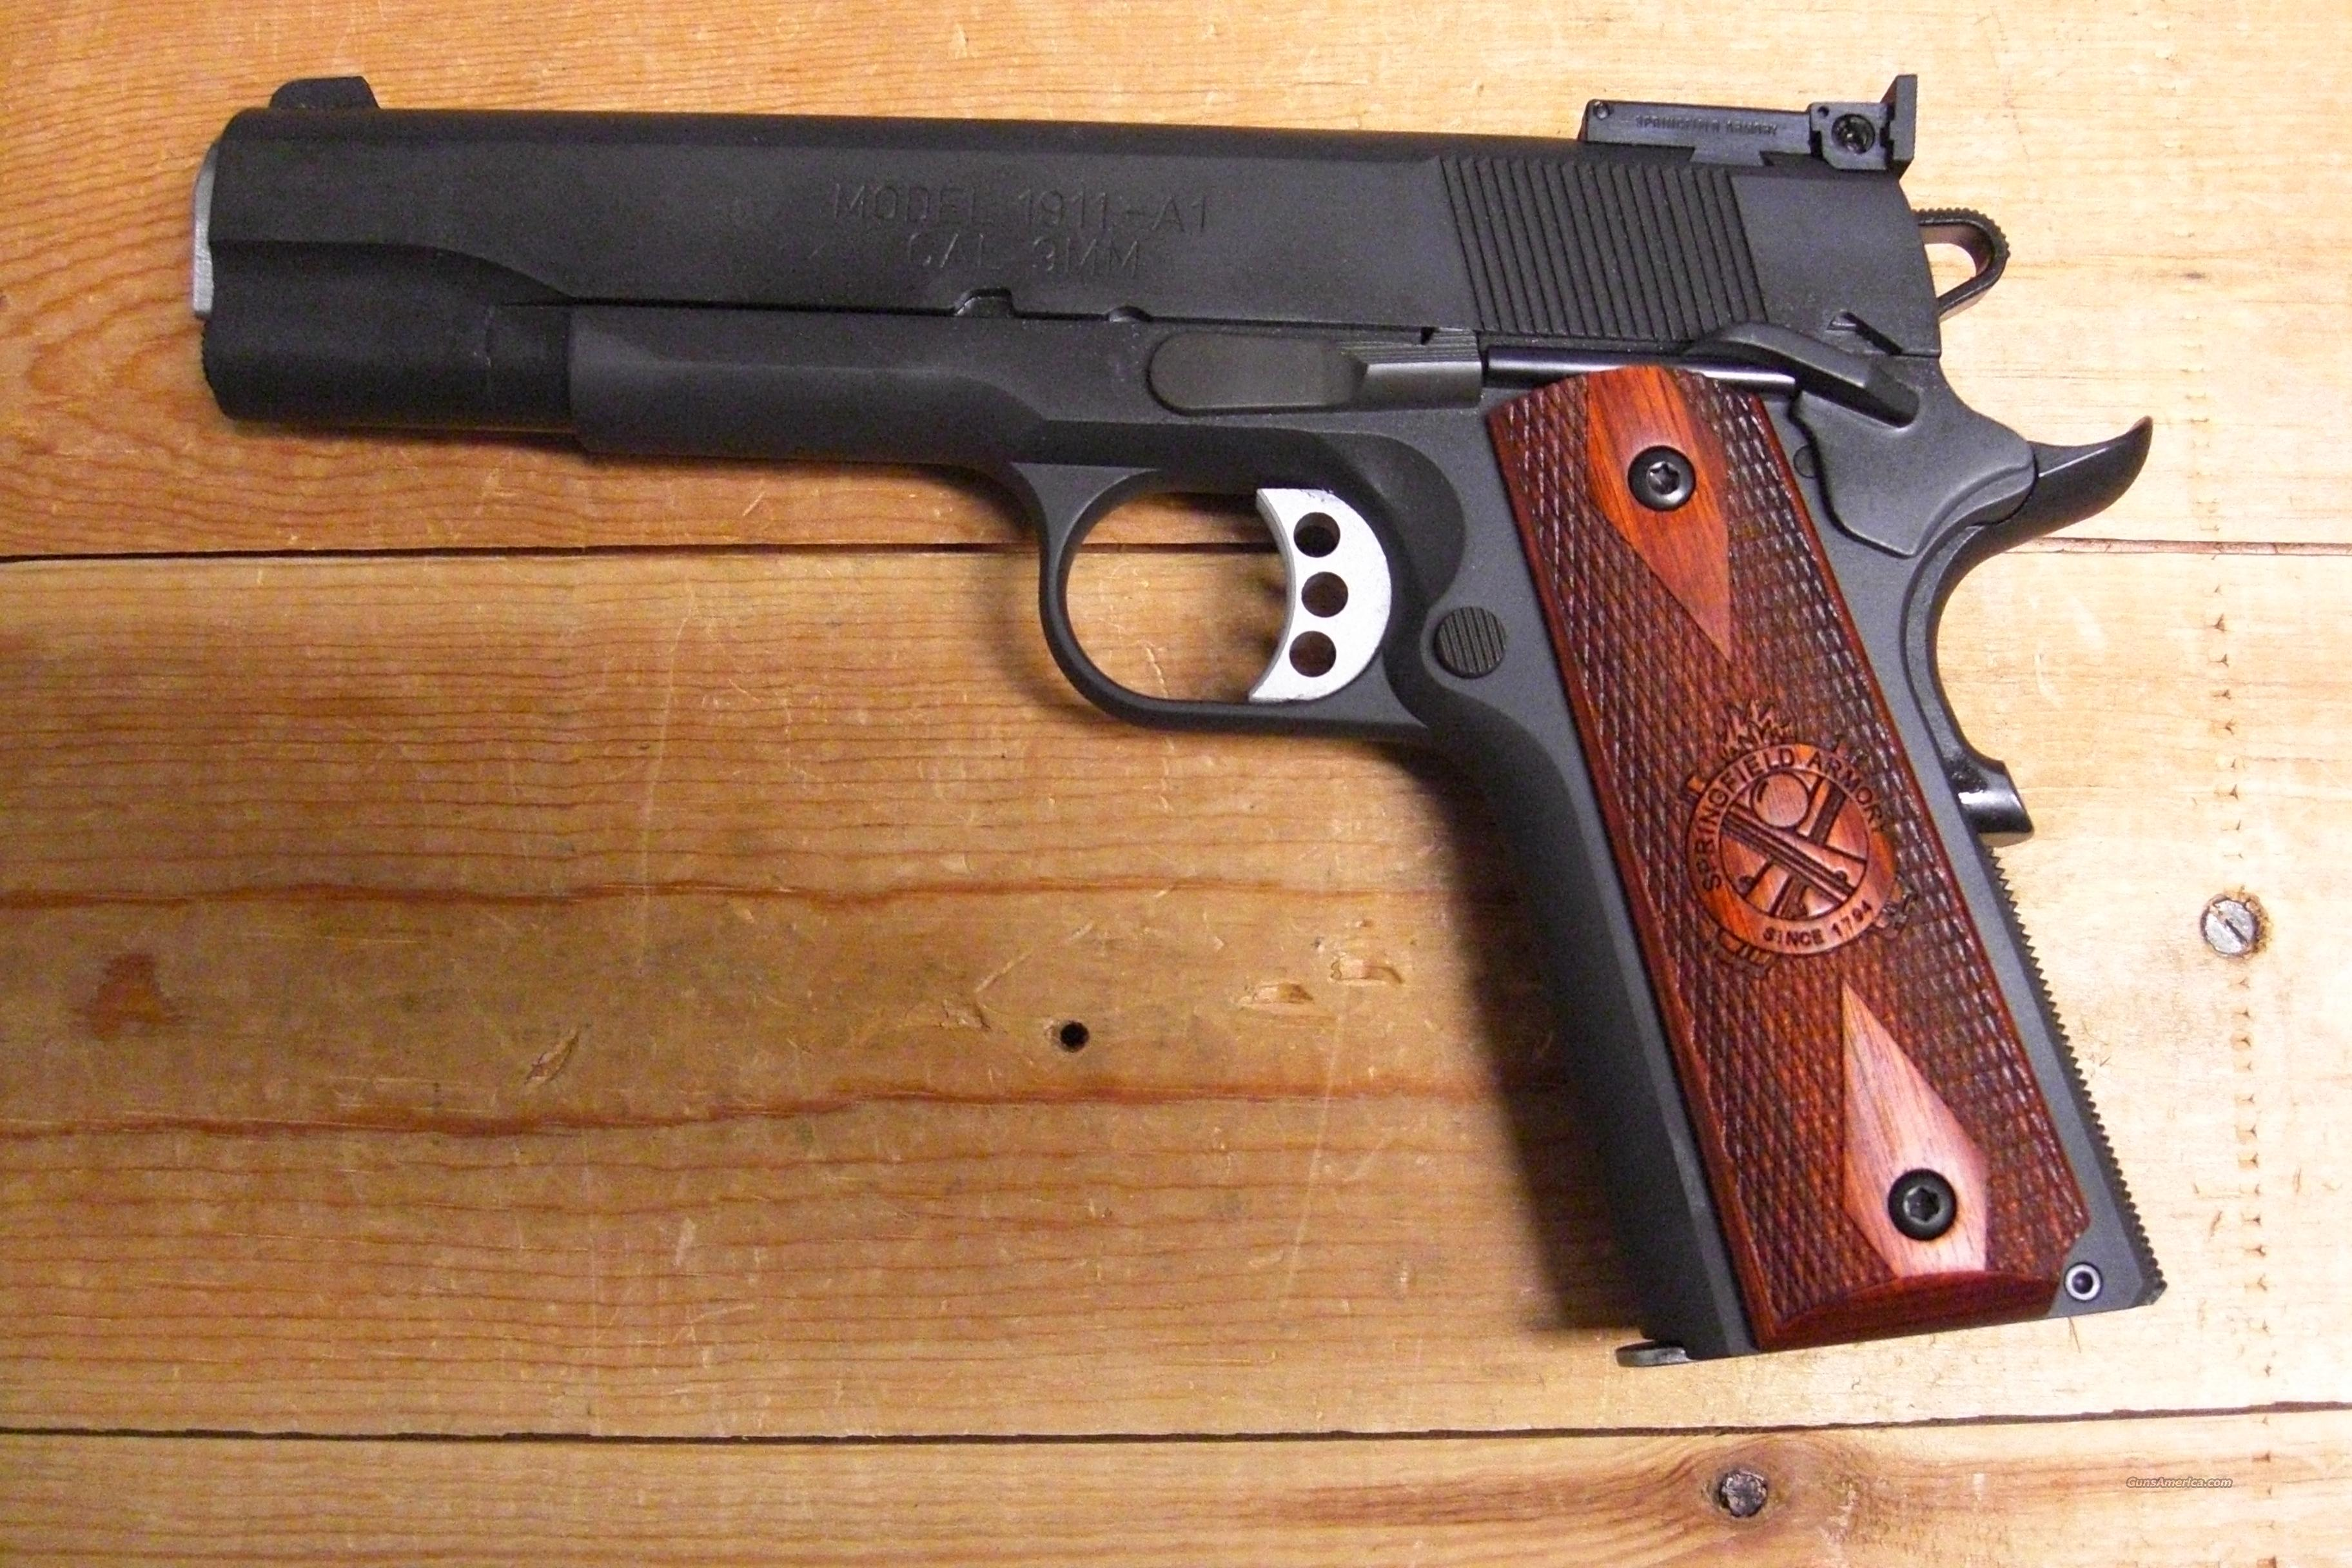 1911-A1 Range Officer 9mm  Guns > Pistols > Springfield Armory Pistols > 1911 Type